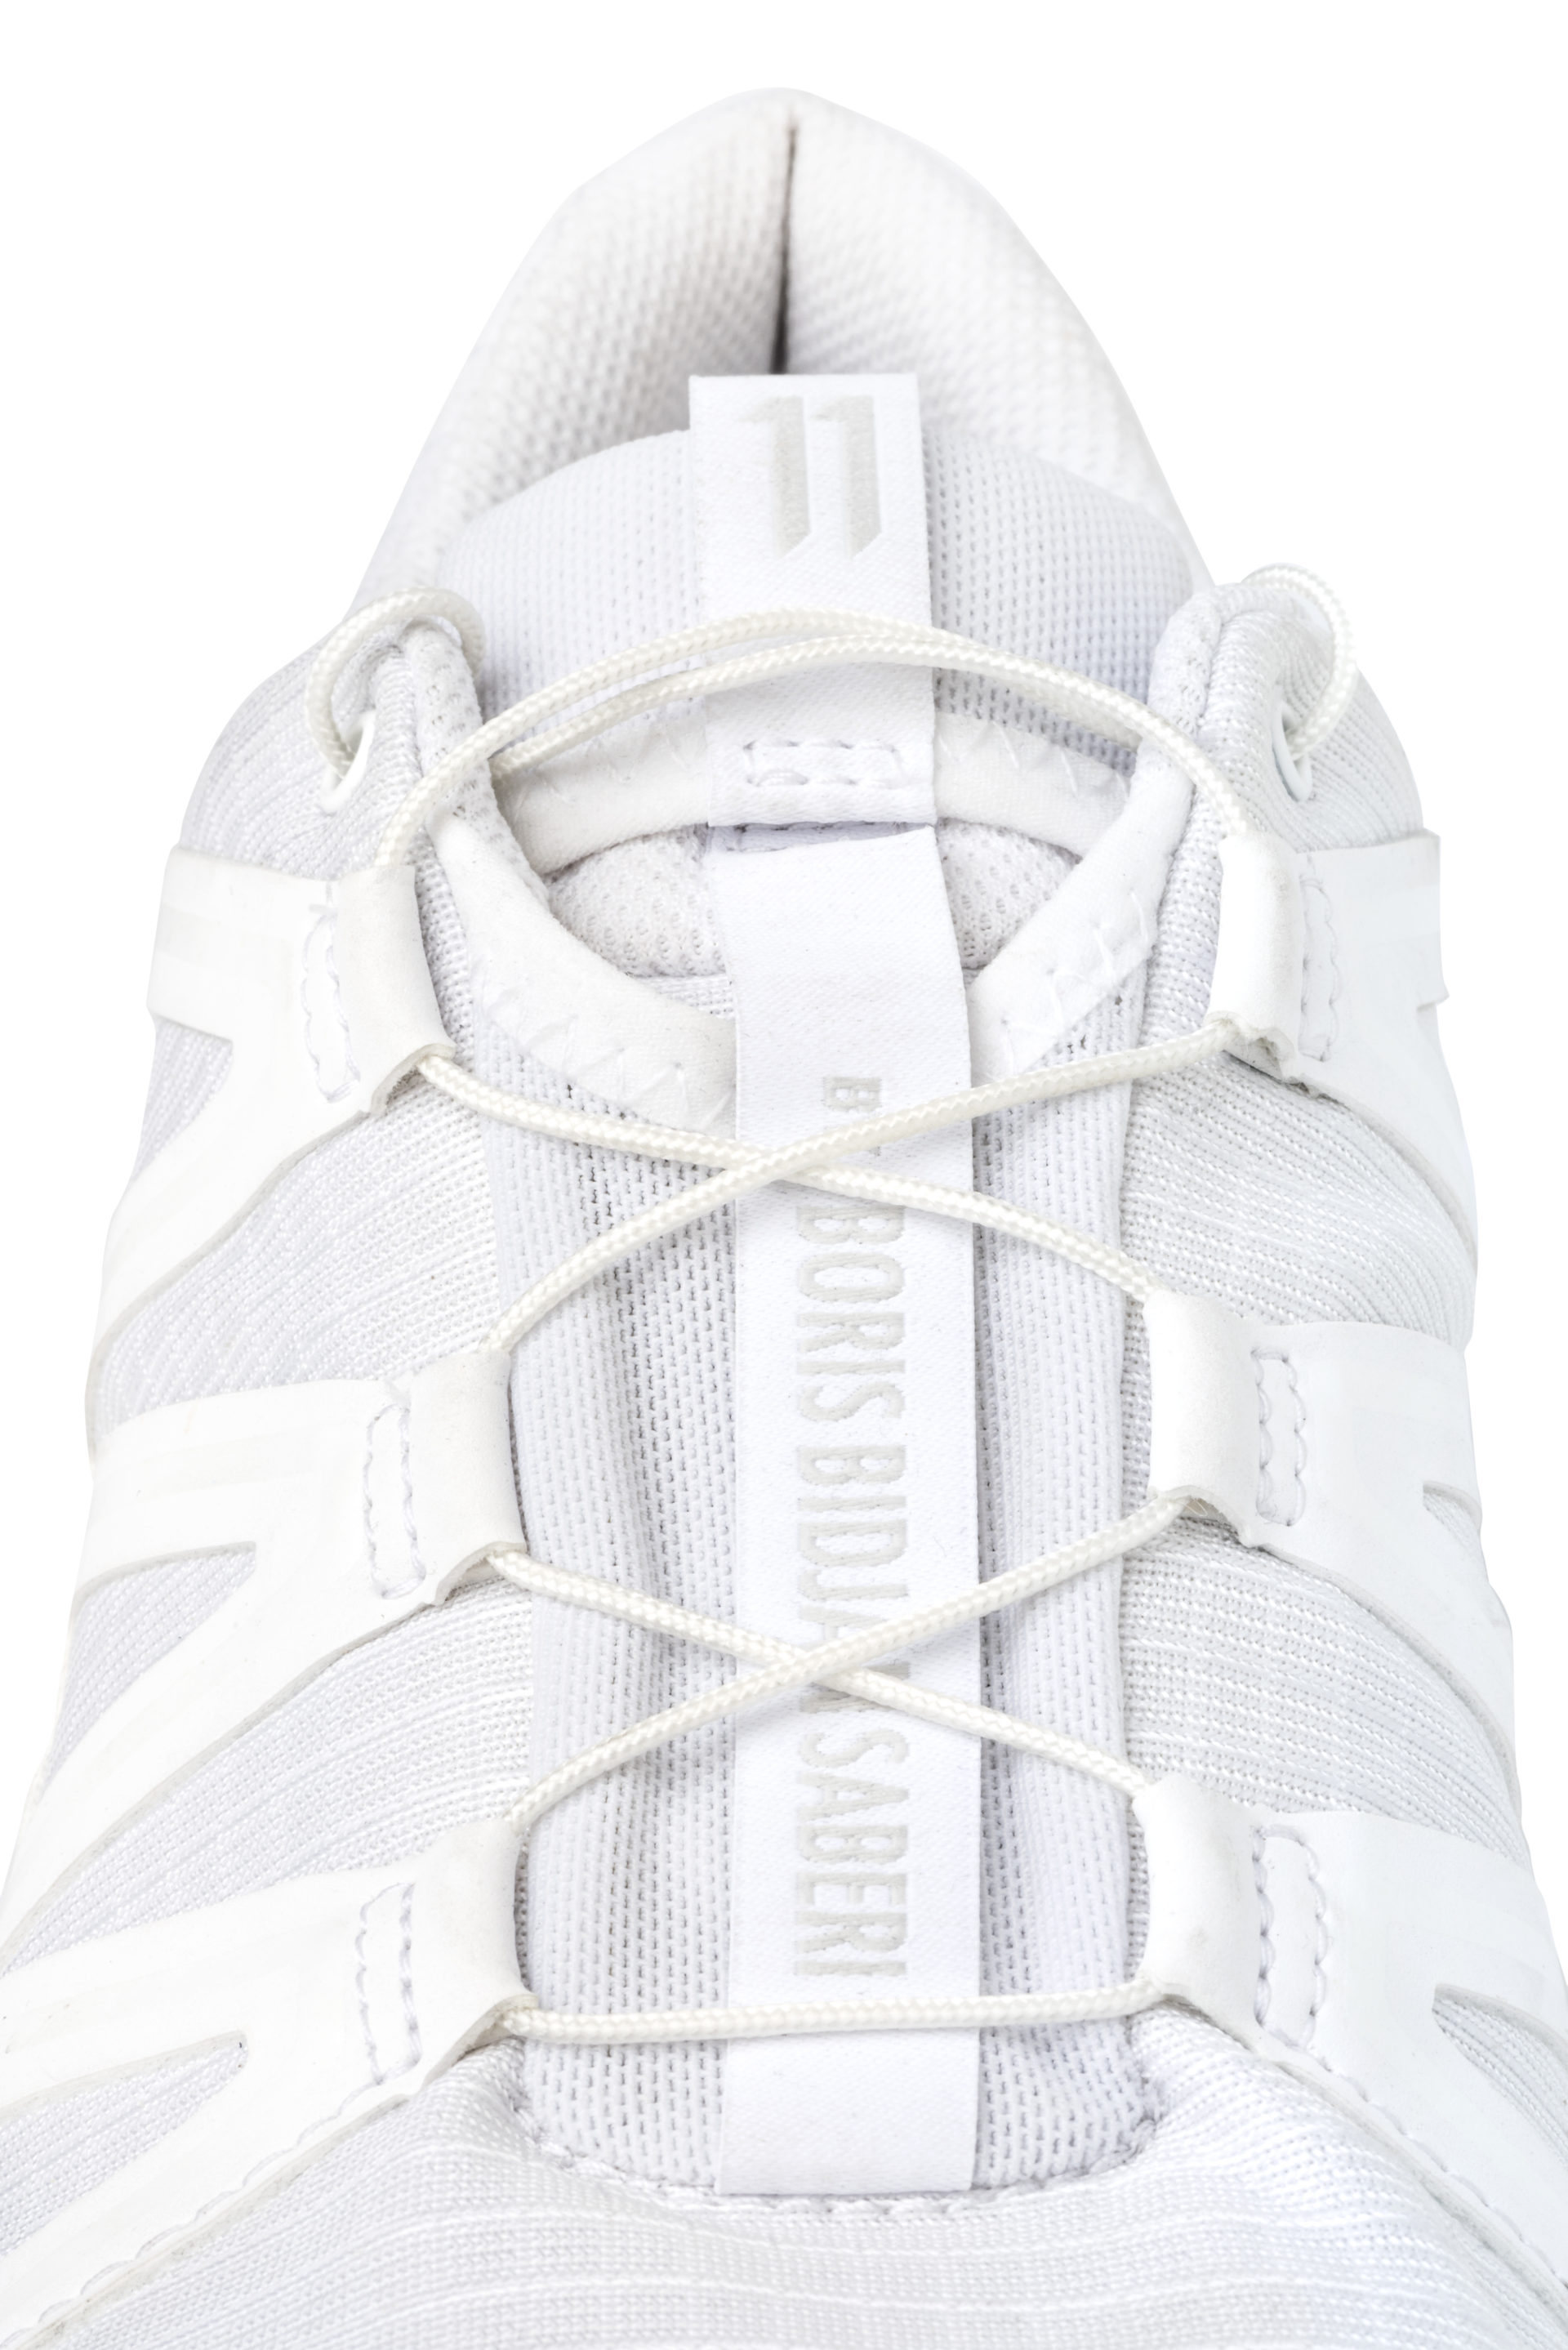 11bybbs_salomon_speedcross4_white_003-1920x2877